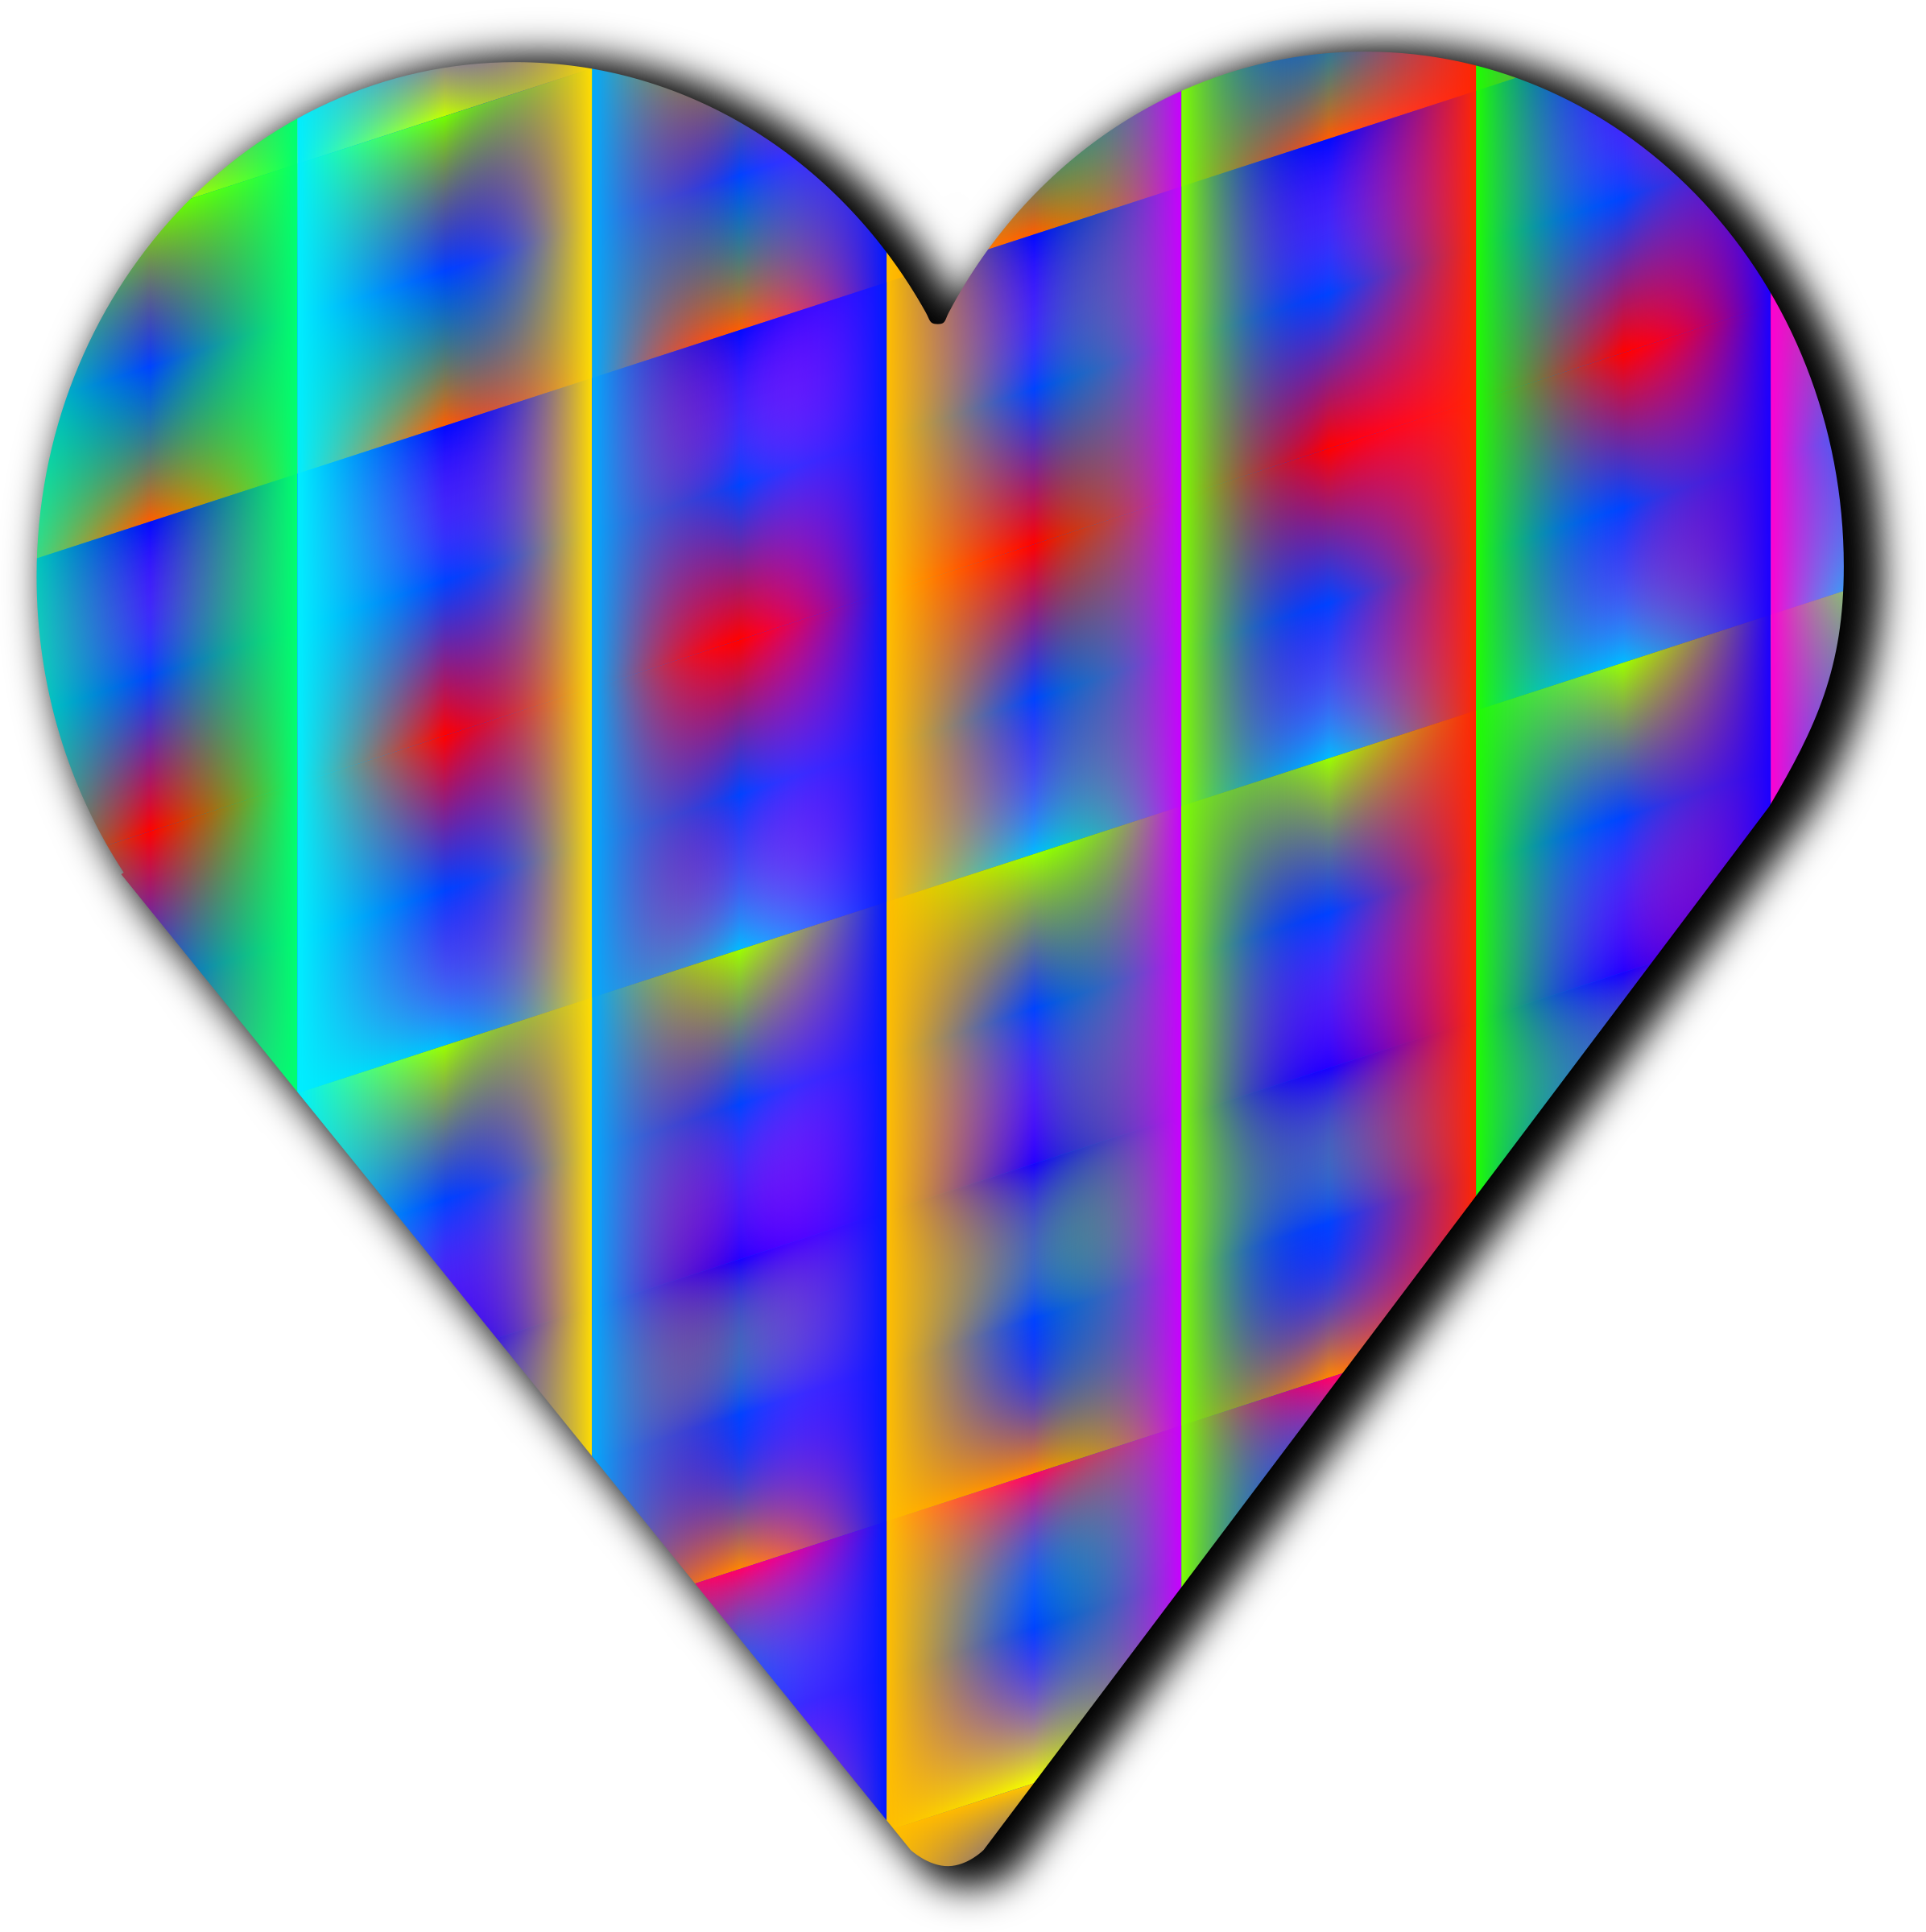 Clipart cross patterned. Heart big image png